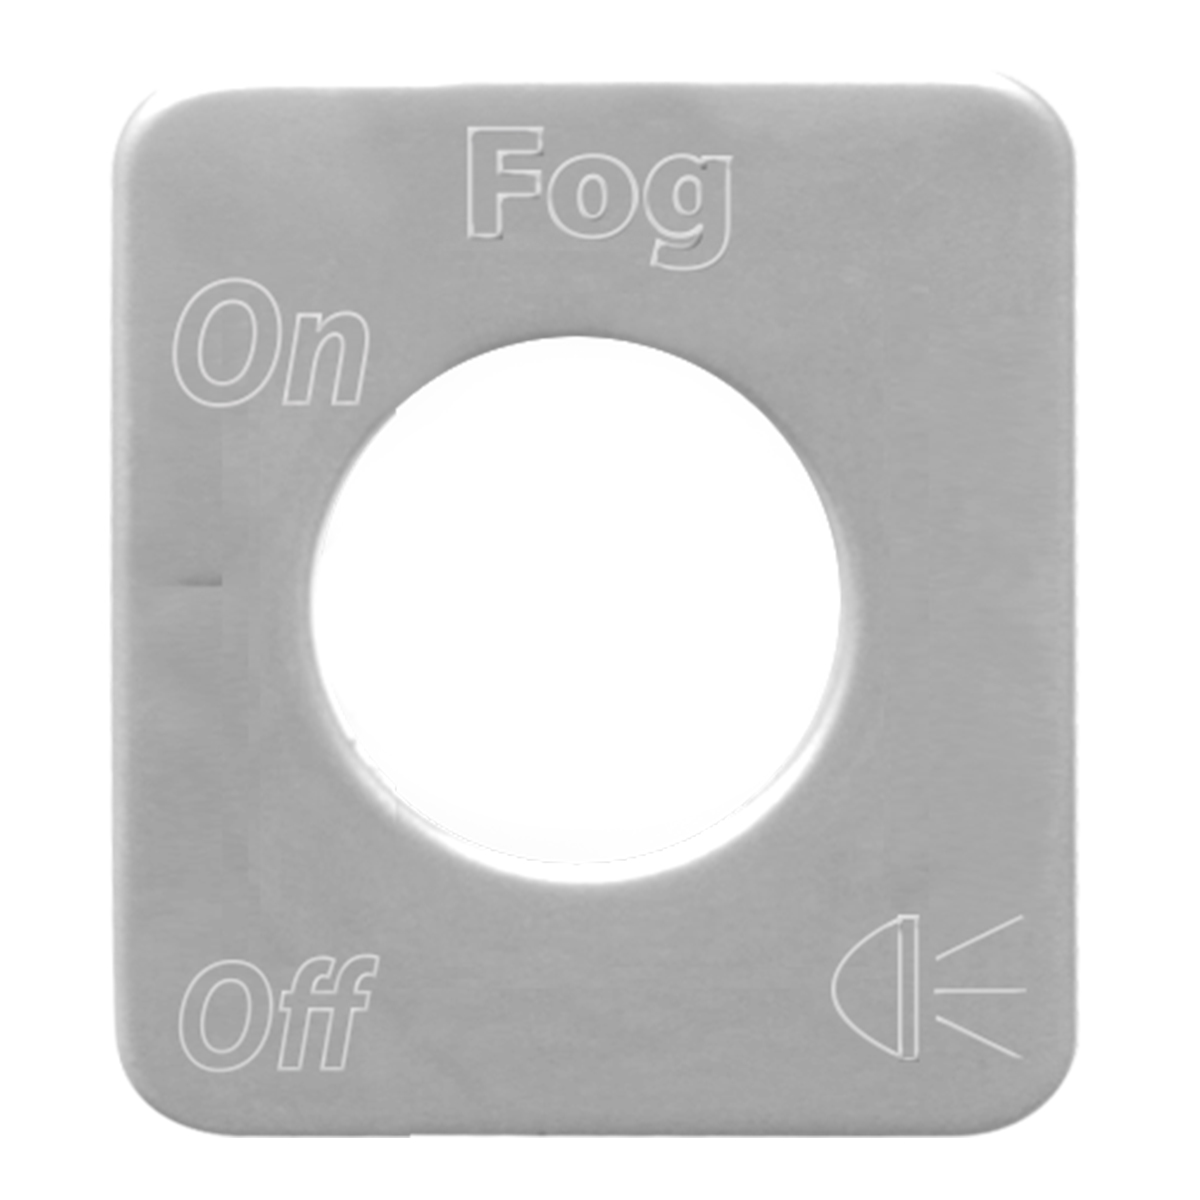 68538 Stainless Steel Fog Light Switch Plate for KW